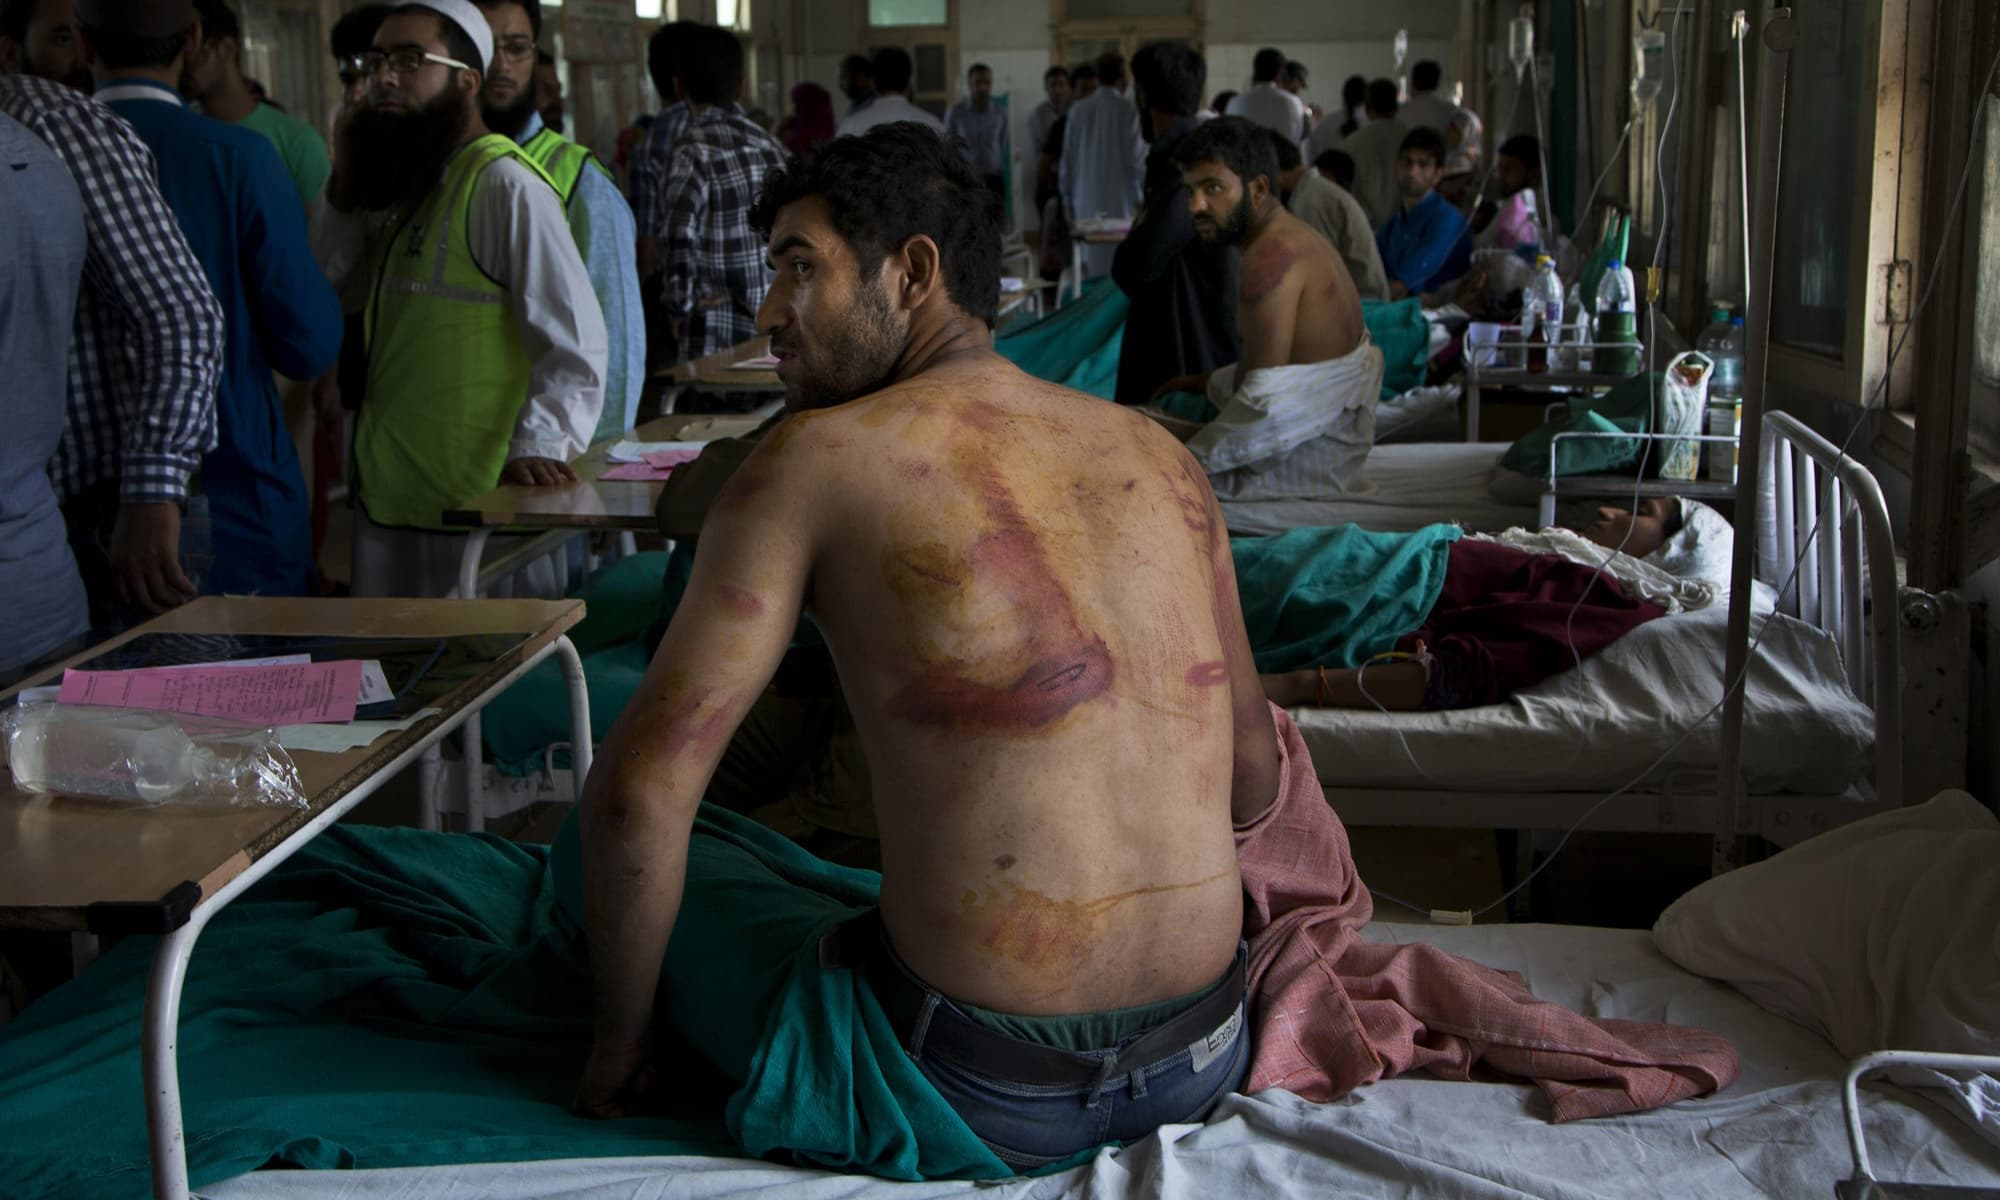 In this August 18, 2016 file photo, Sameer Ahmed, a Kashmiri man allegedly beaten up by Indian soldiers at Khrew village, recovers at a local hospital in Srinagar. — AP